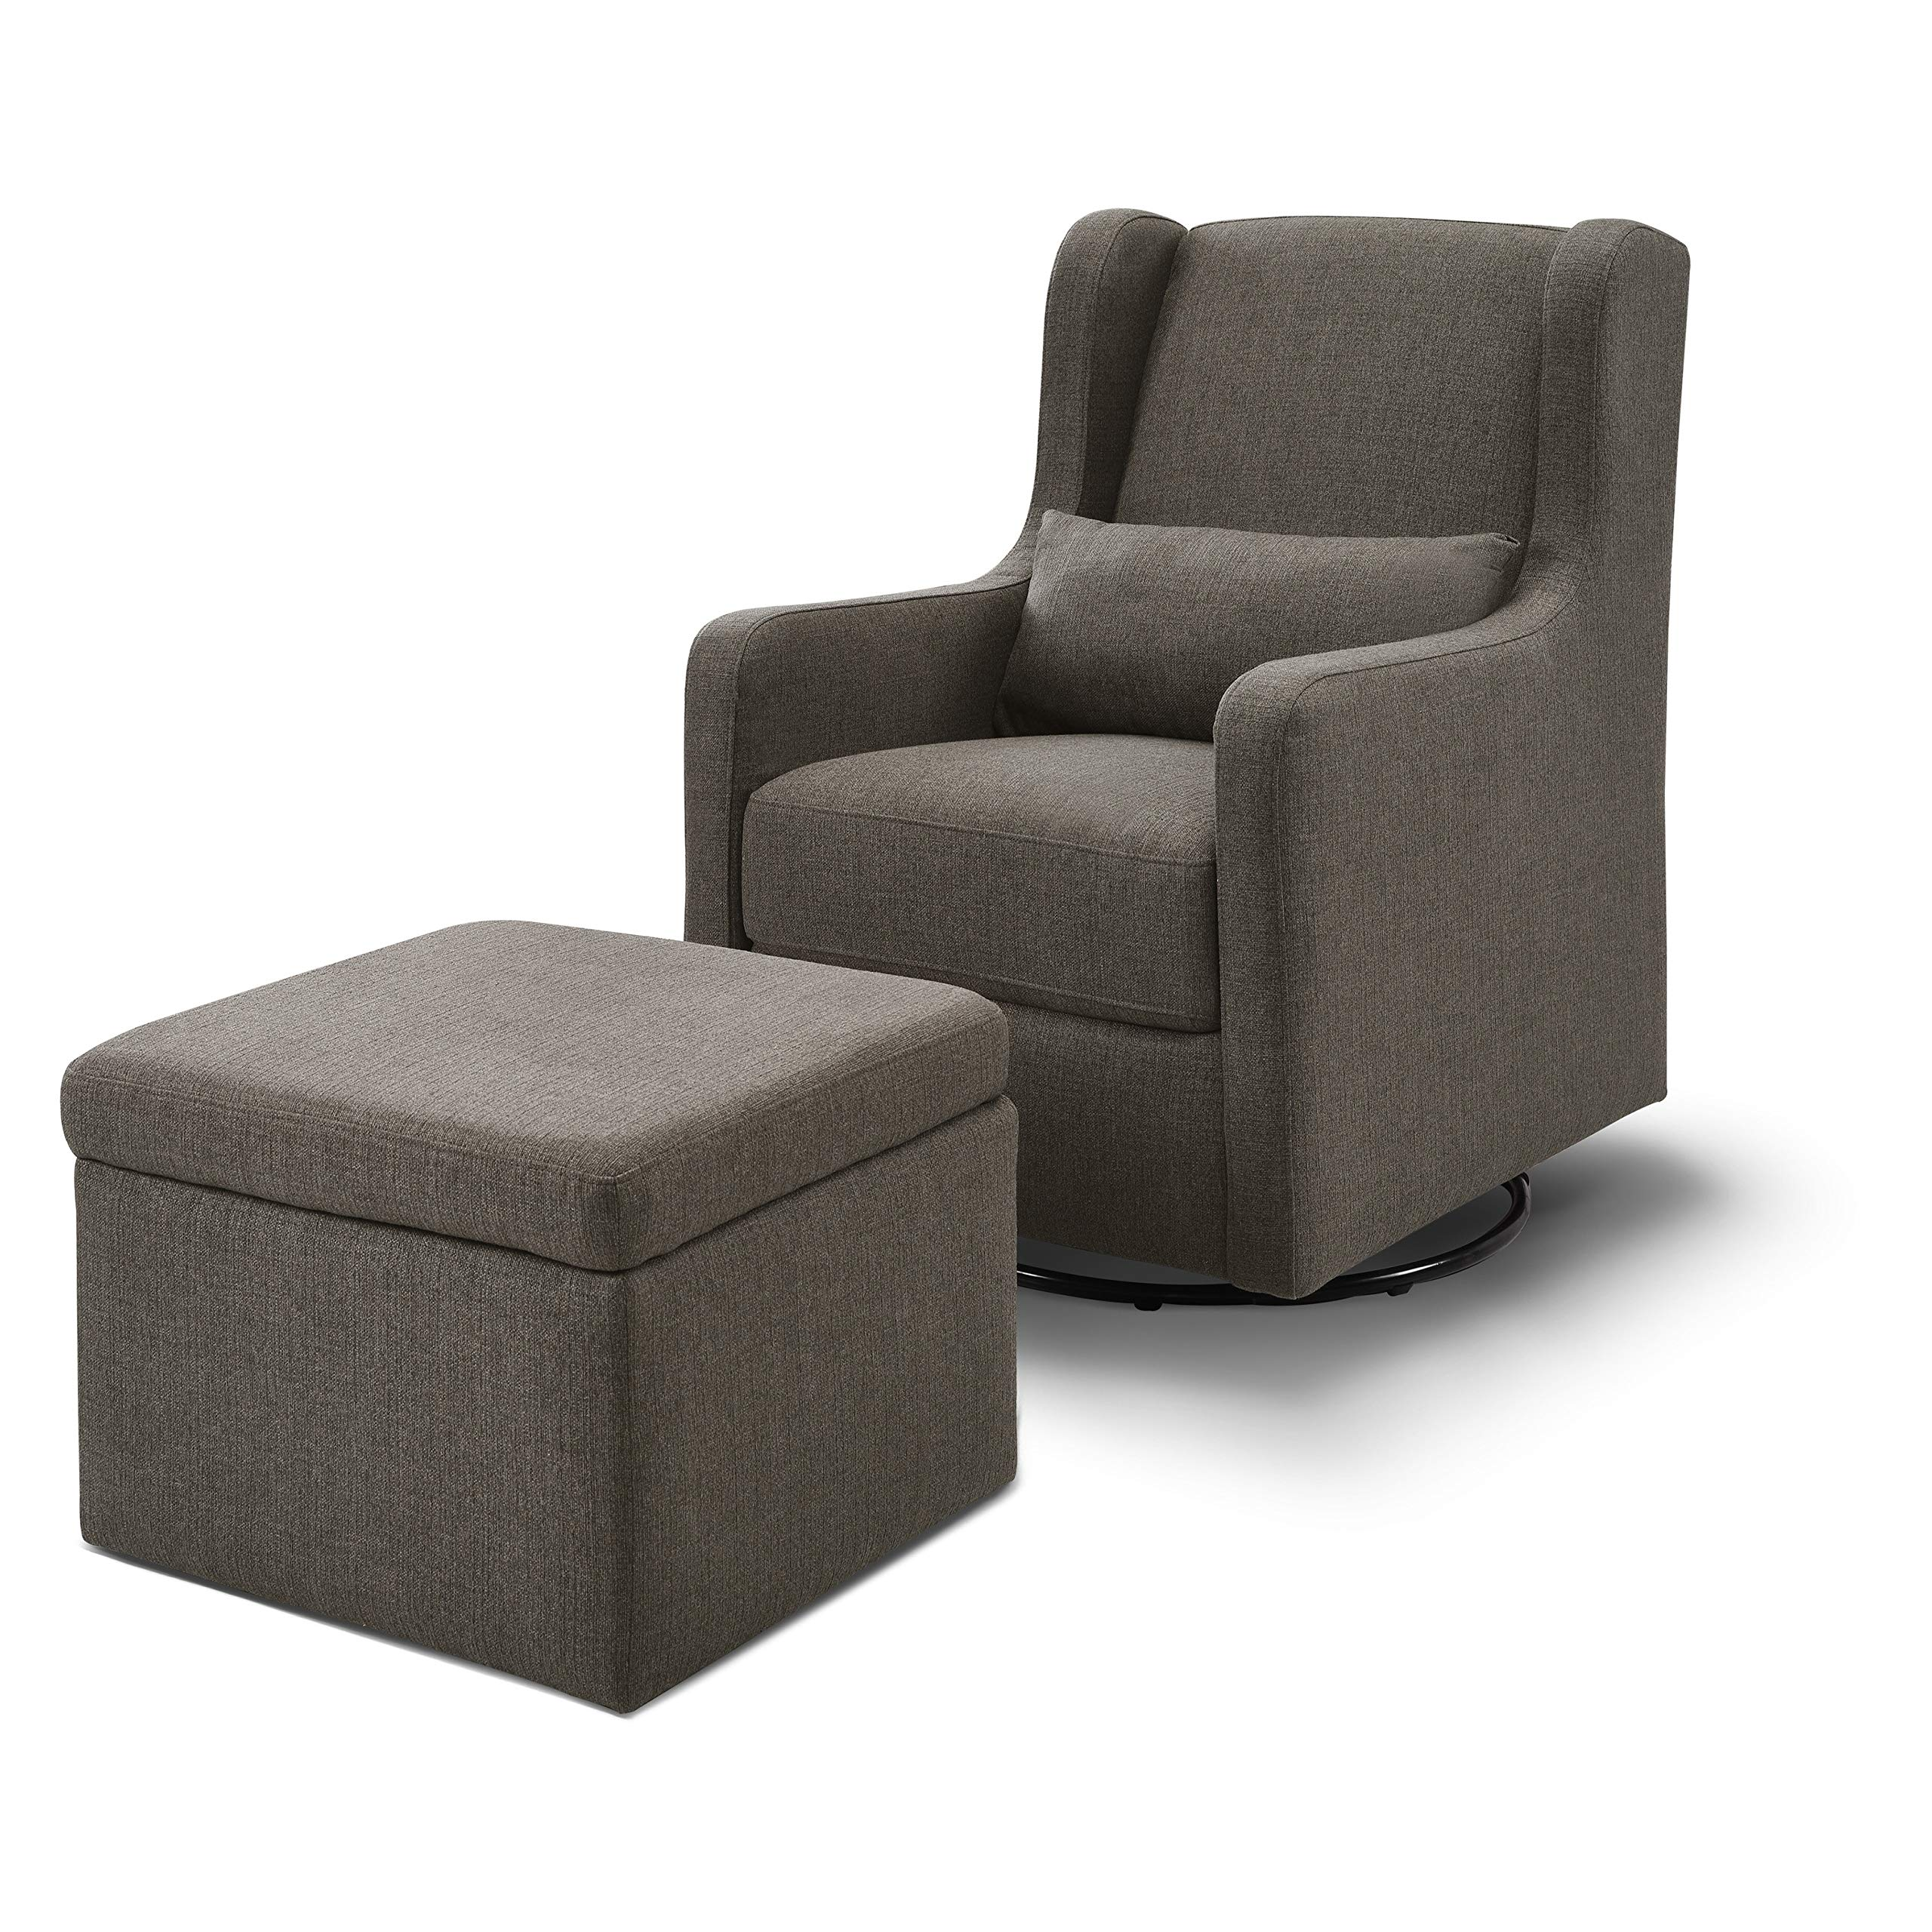 Carter's by Davinci Adrian Swivel Glider with Storage Ottoman in Water Repellent and Stain Resistant Fabric, Charcoal Linen